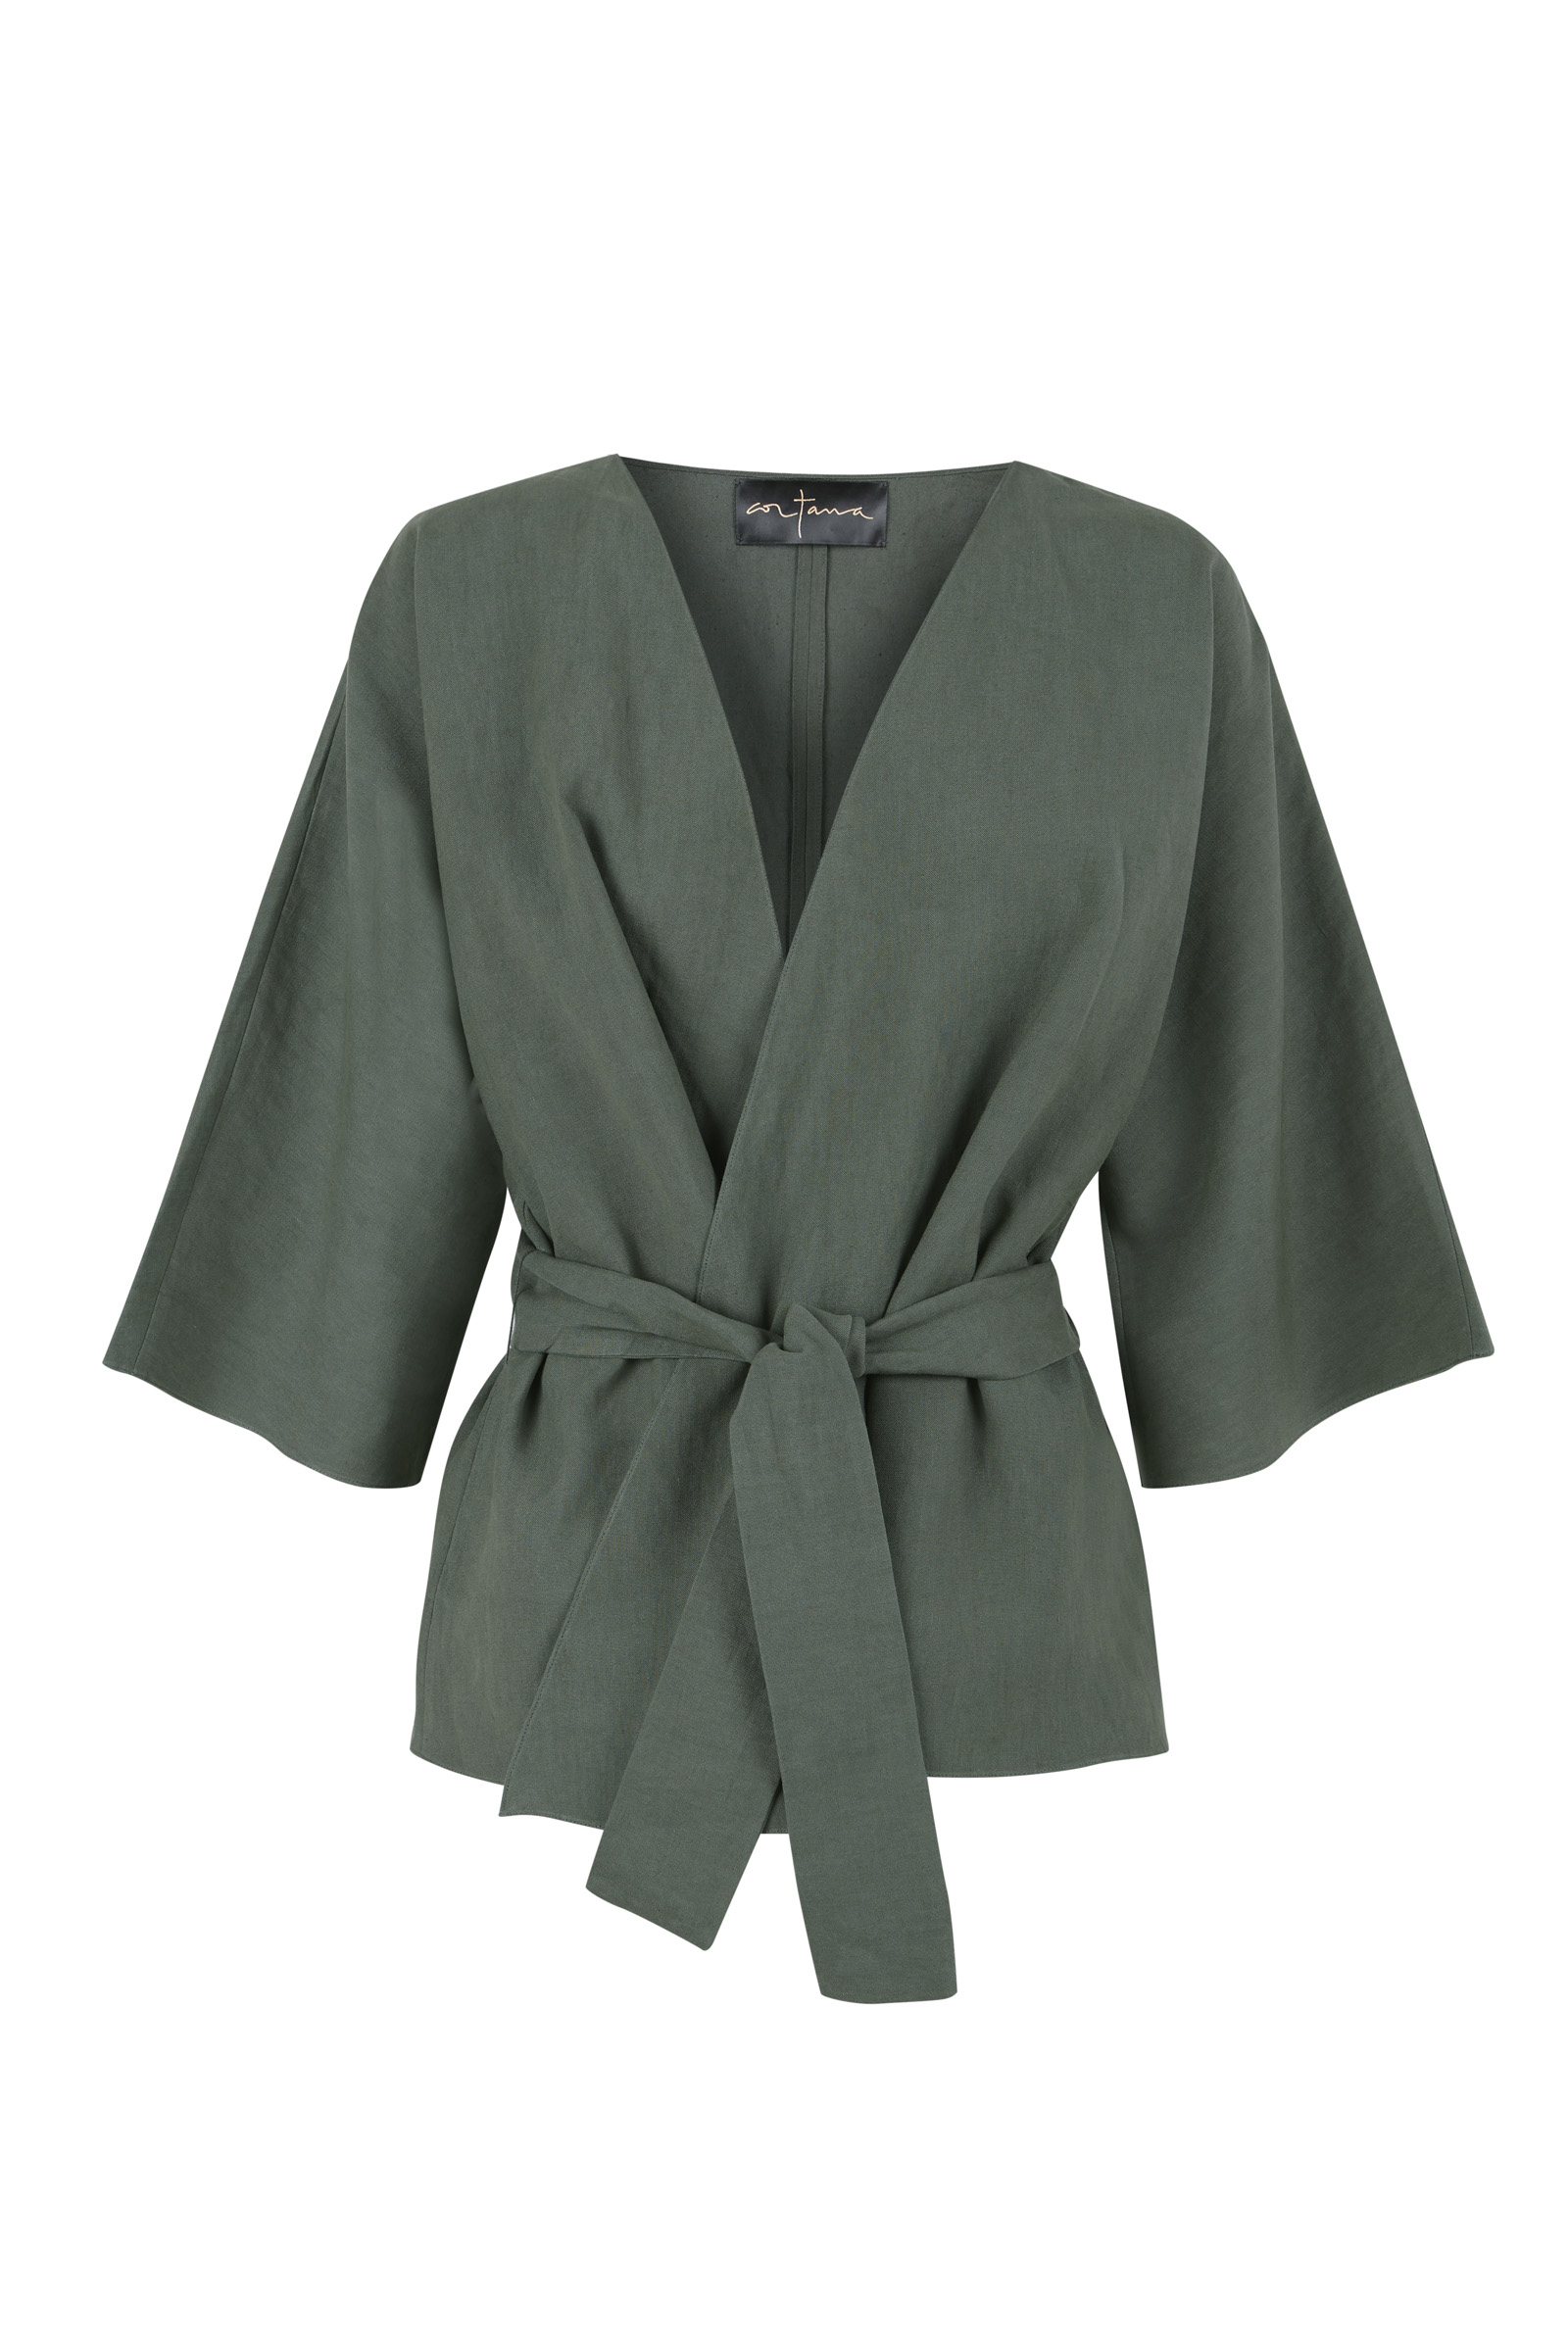 MOOH GREEN LINEN JACKET - Cortana Moda